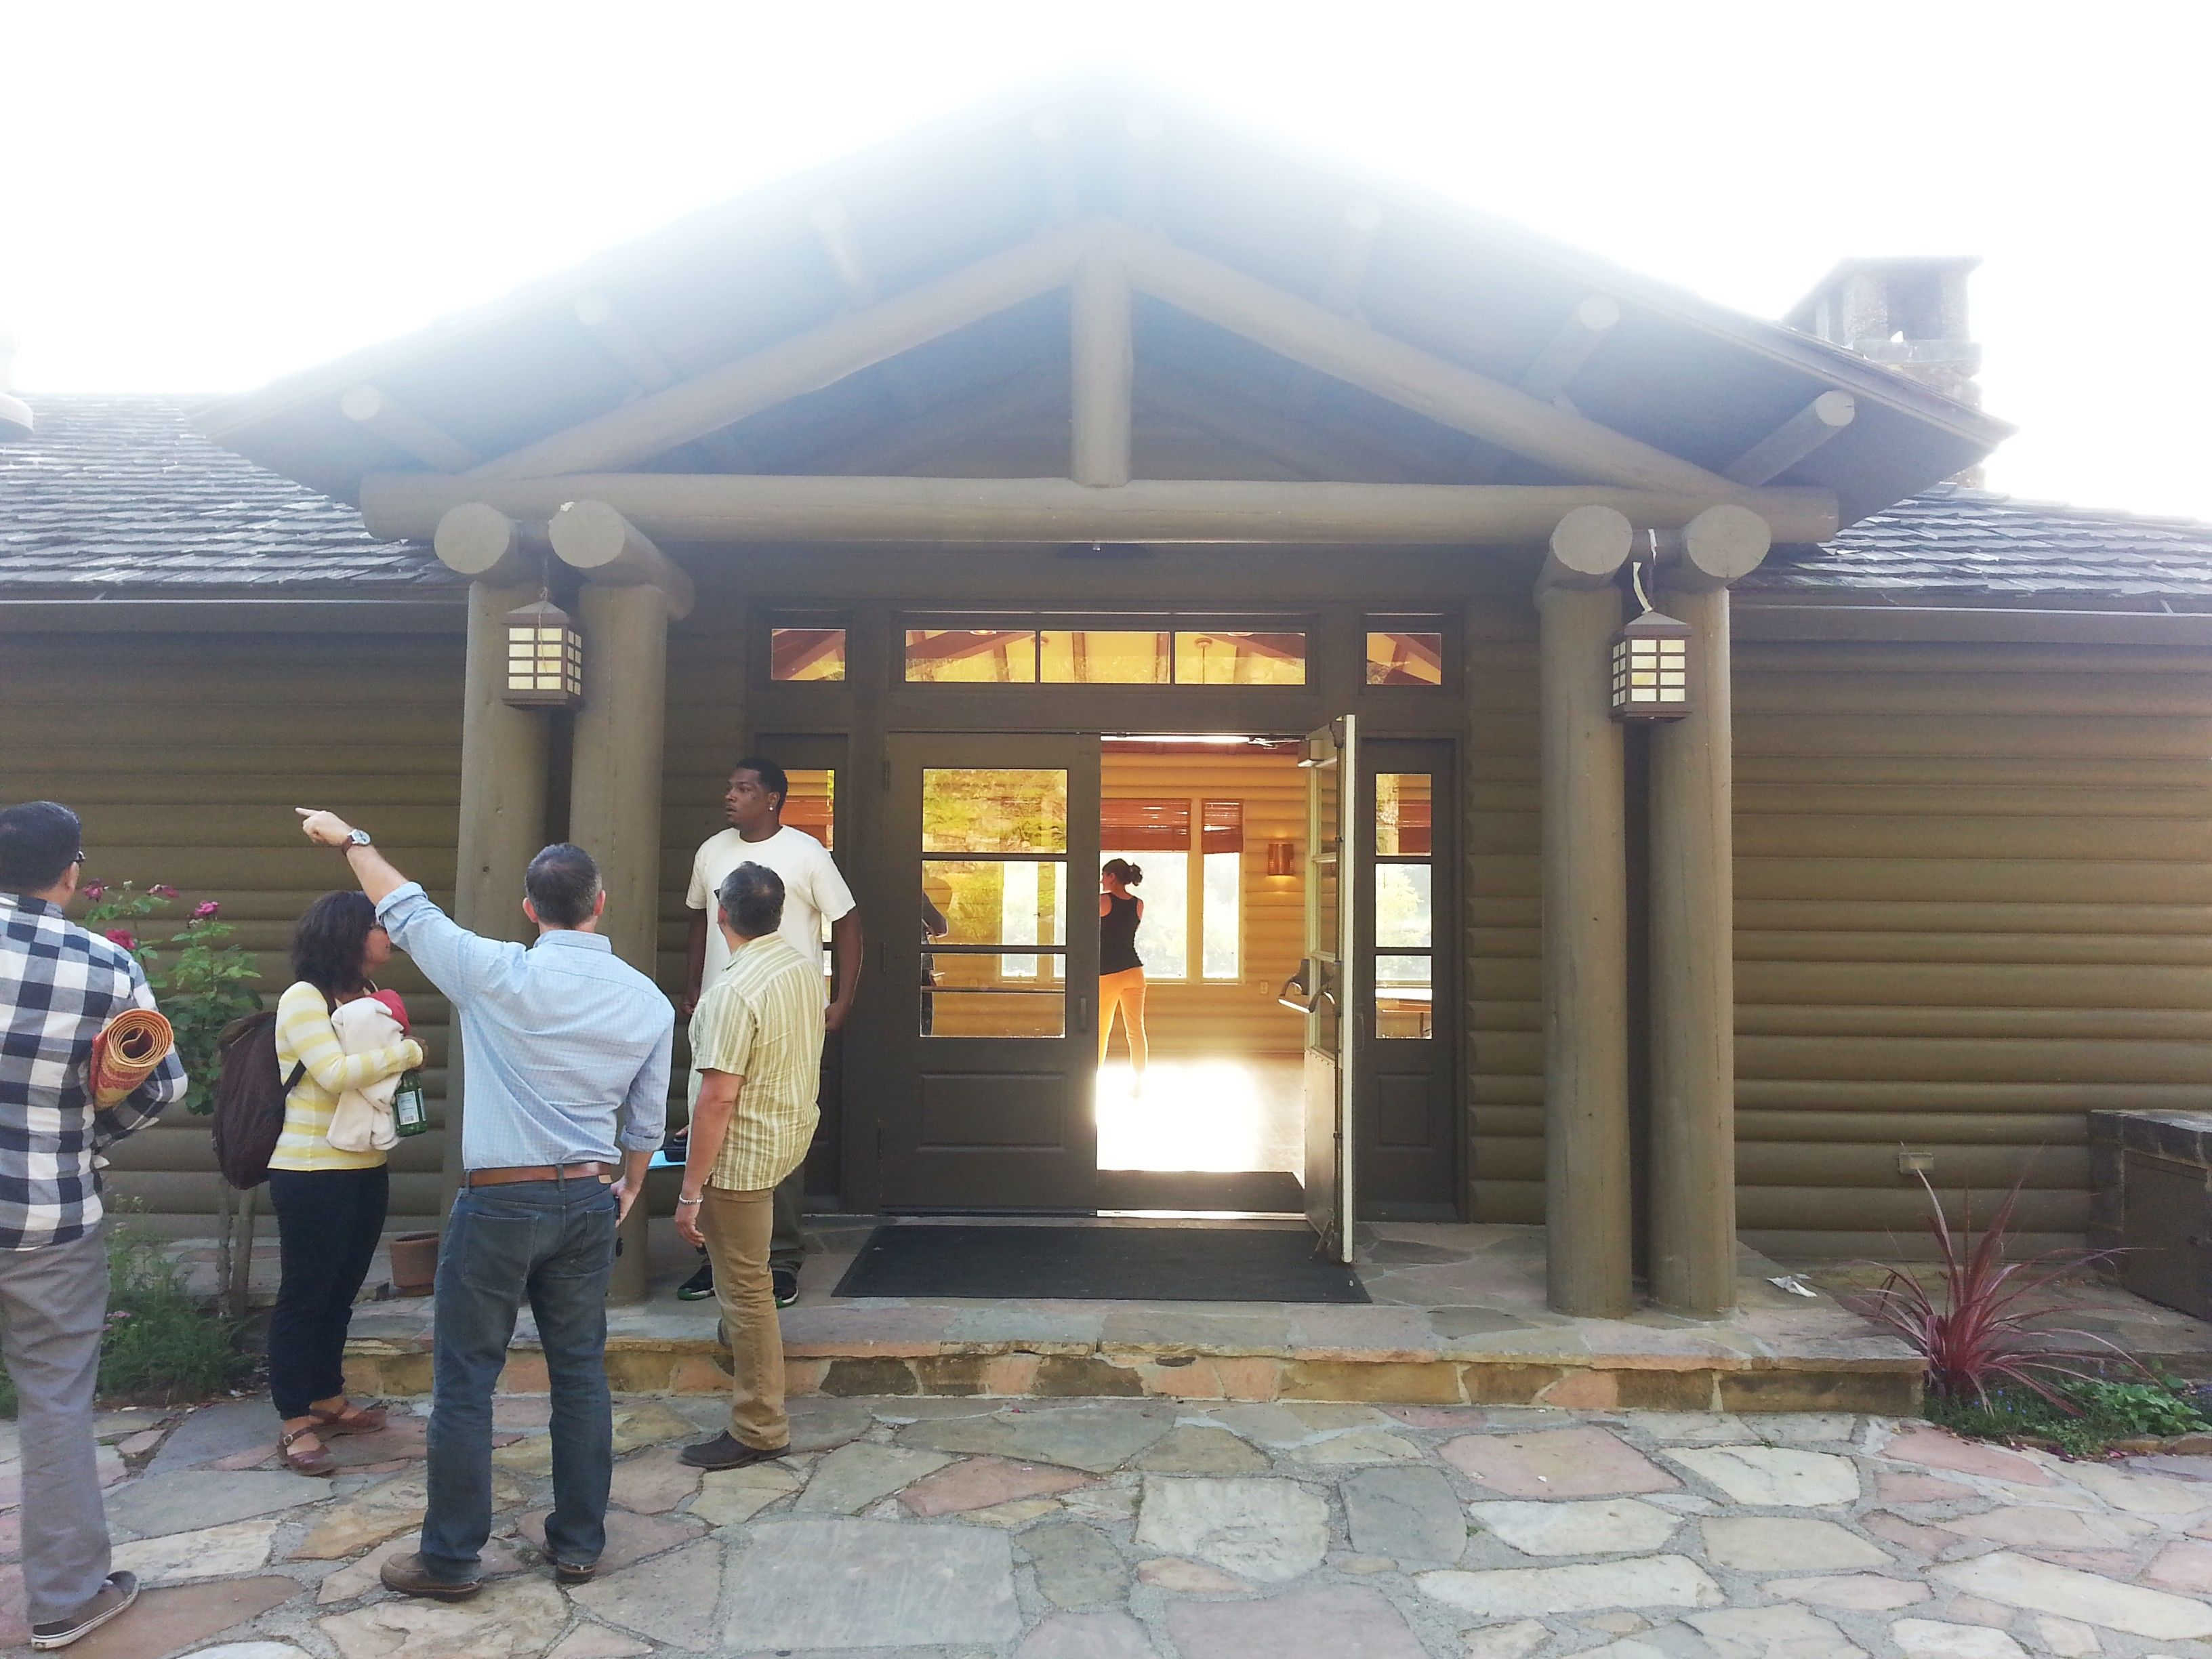 View of the entrance, where guests would enter.  Cobblestone patio outside.